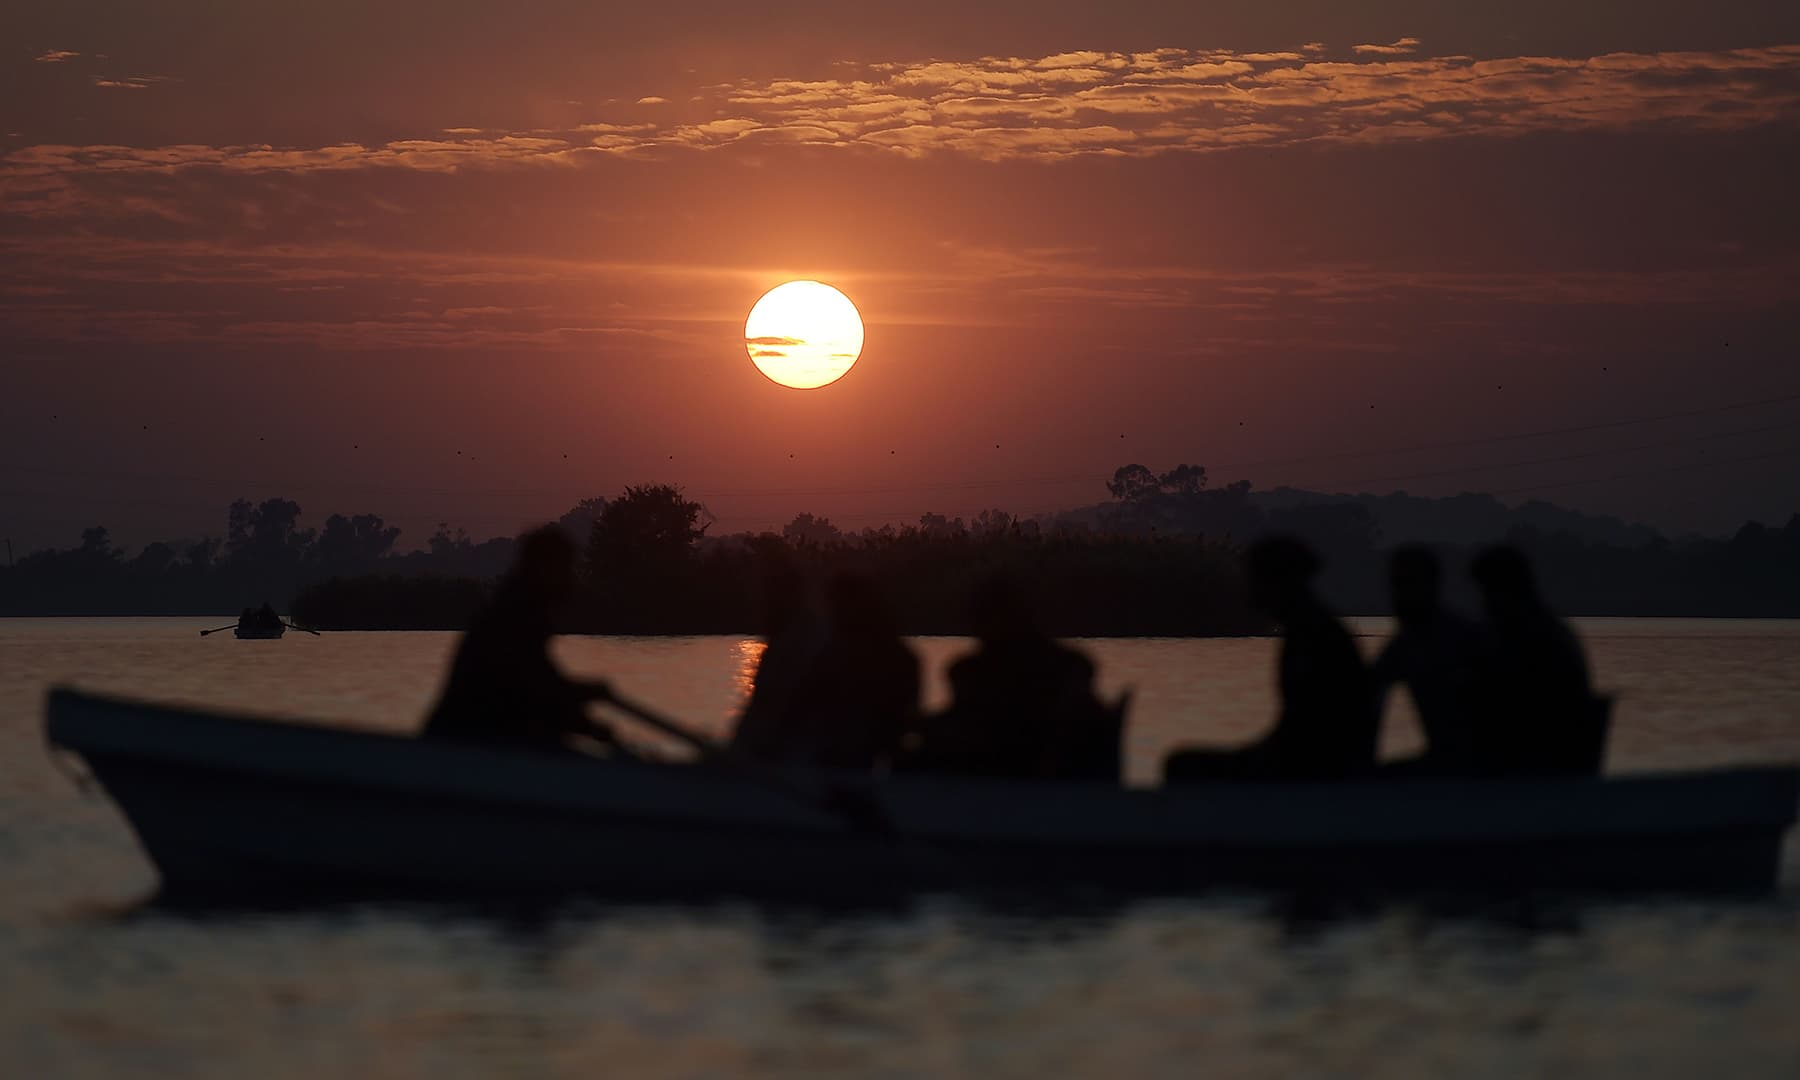 A boatman gives a ride to tourists during the last sunset of 2019 at Lake View Point, in Islamabad on Tuesday. — AFP